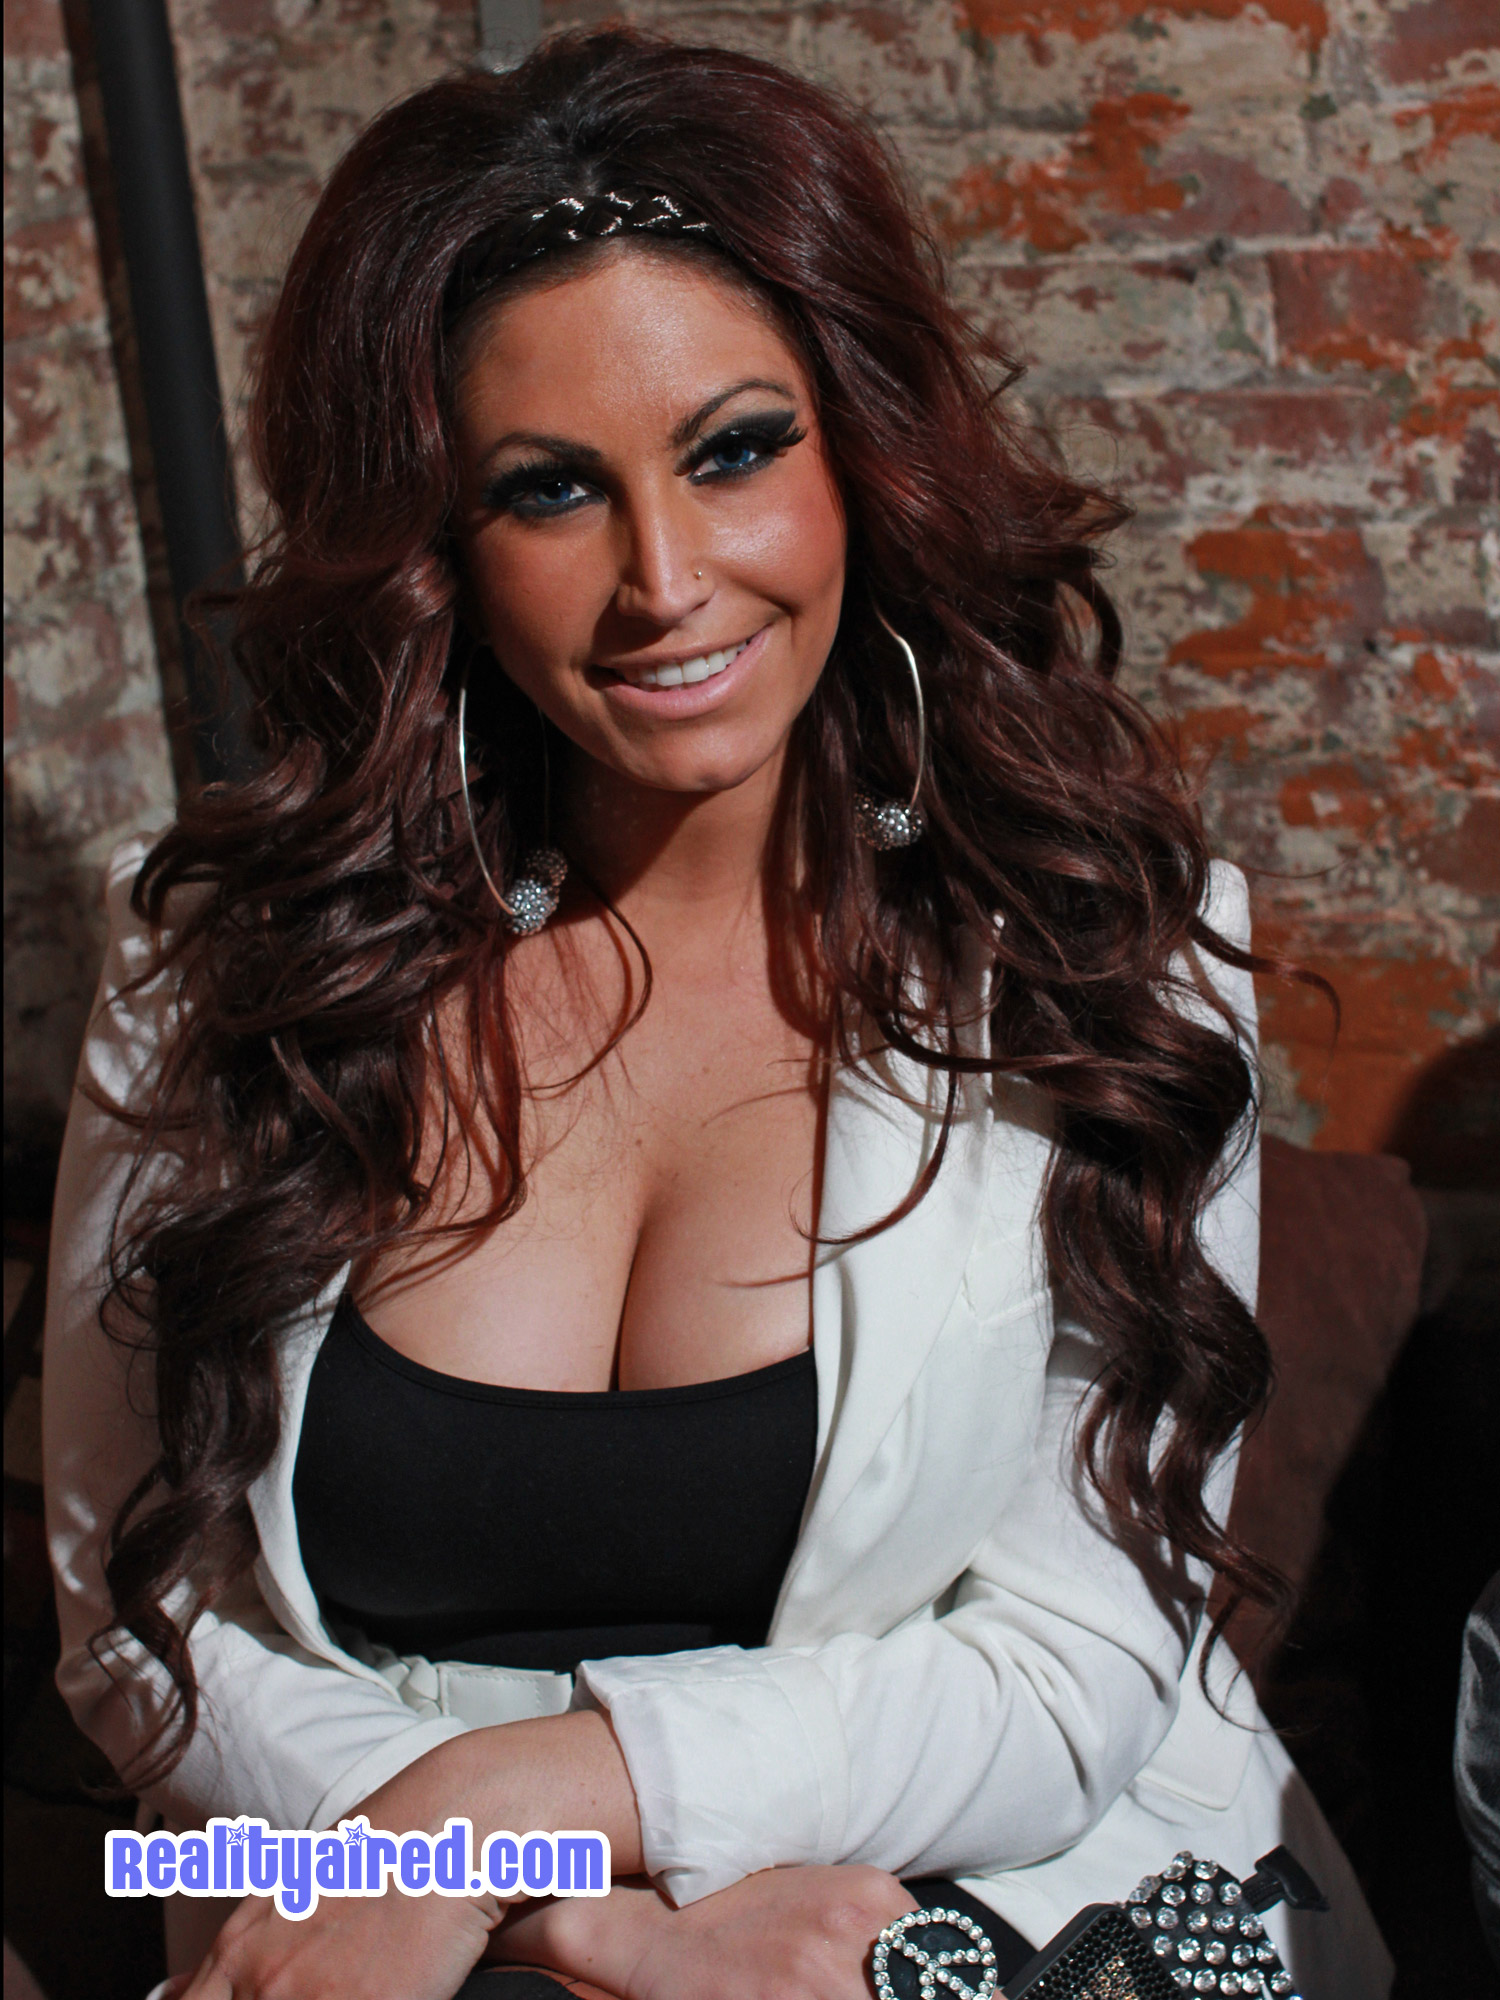 Photos Tracy Dimarco nudes (49 photo), Pussy, Cleavage, Twitter, in bikini 2017